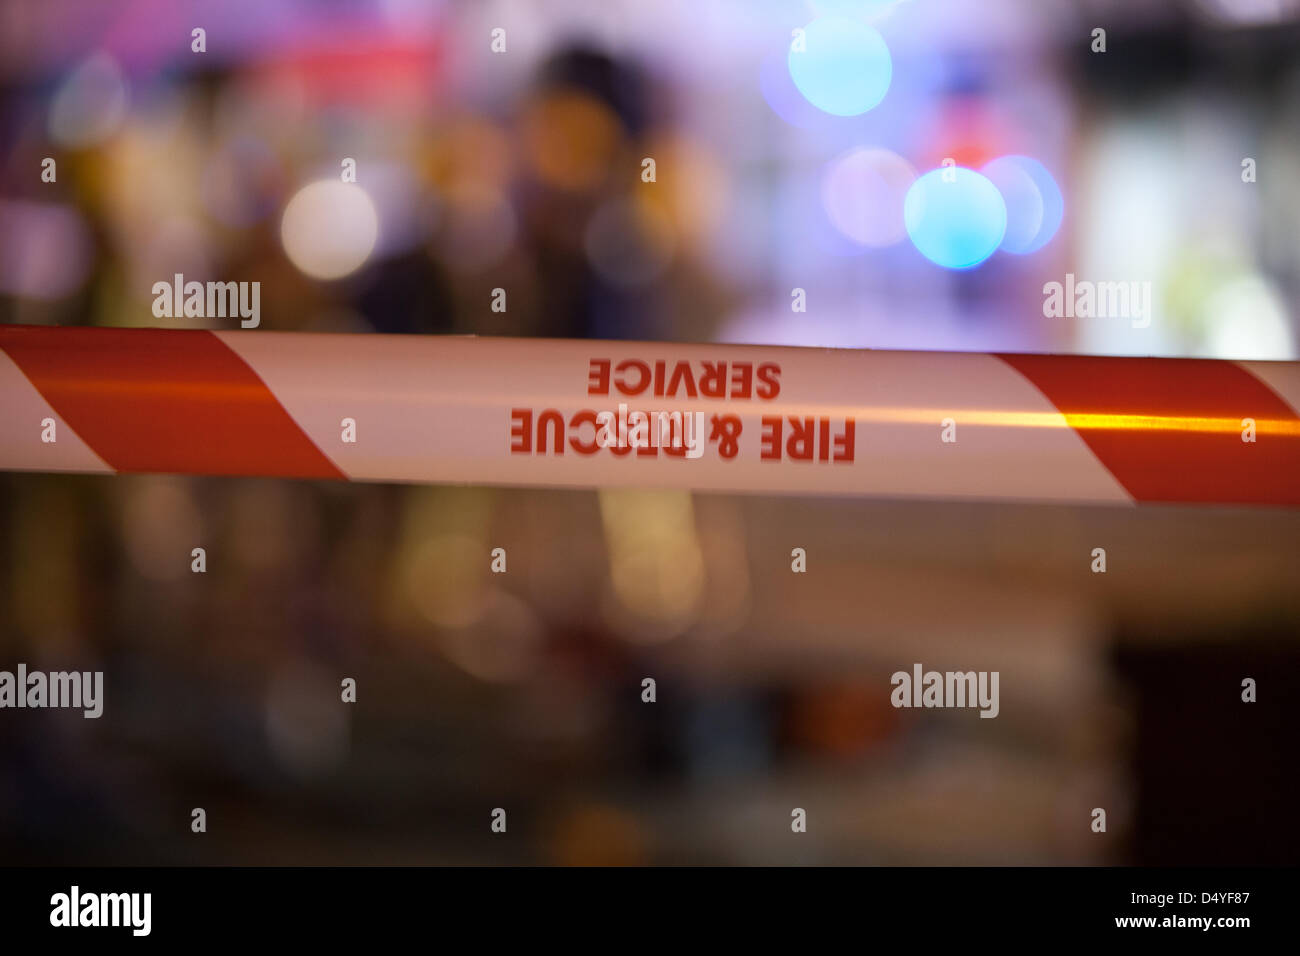 Tamworth, Staffordshire, UK. 20th March 2013. Fire rips through nightclub. Hazard tape at the scene of a fire. Credit: - Stock Image